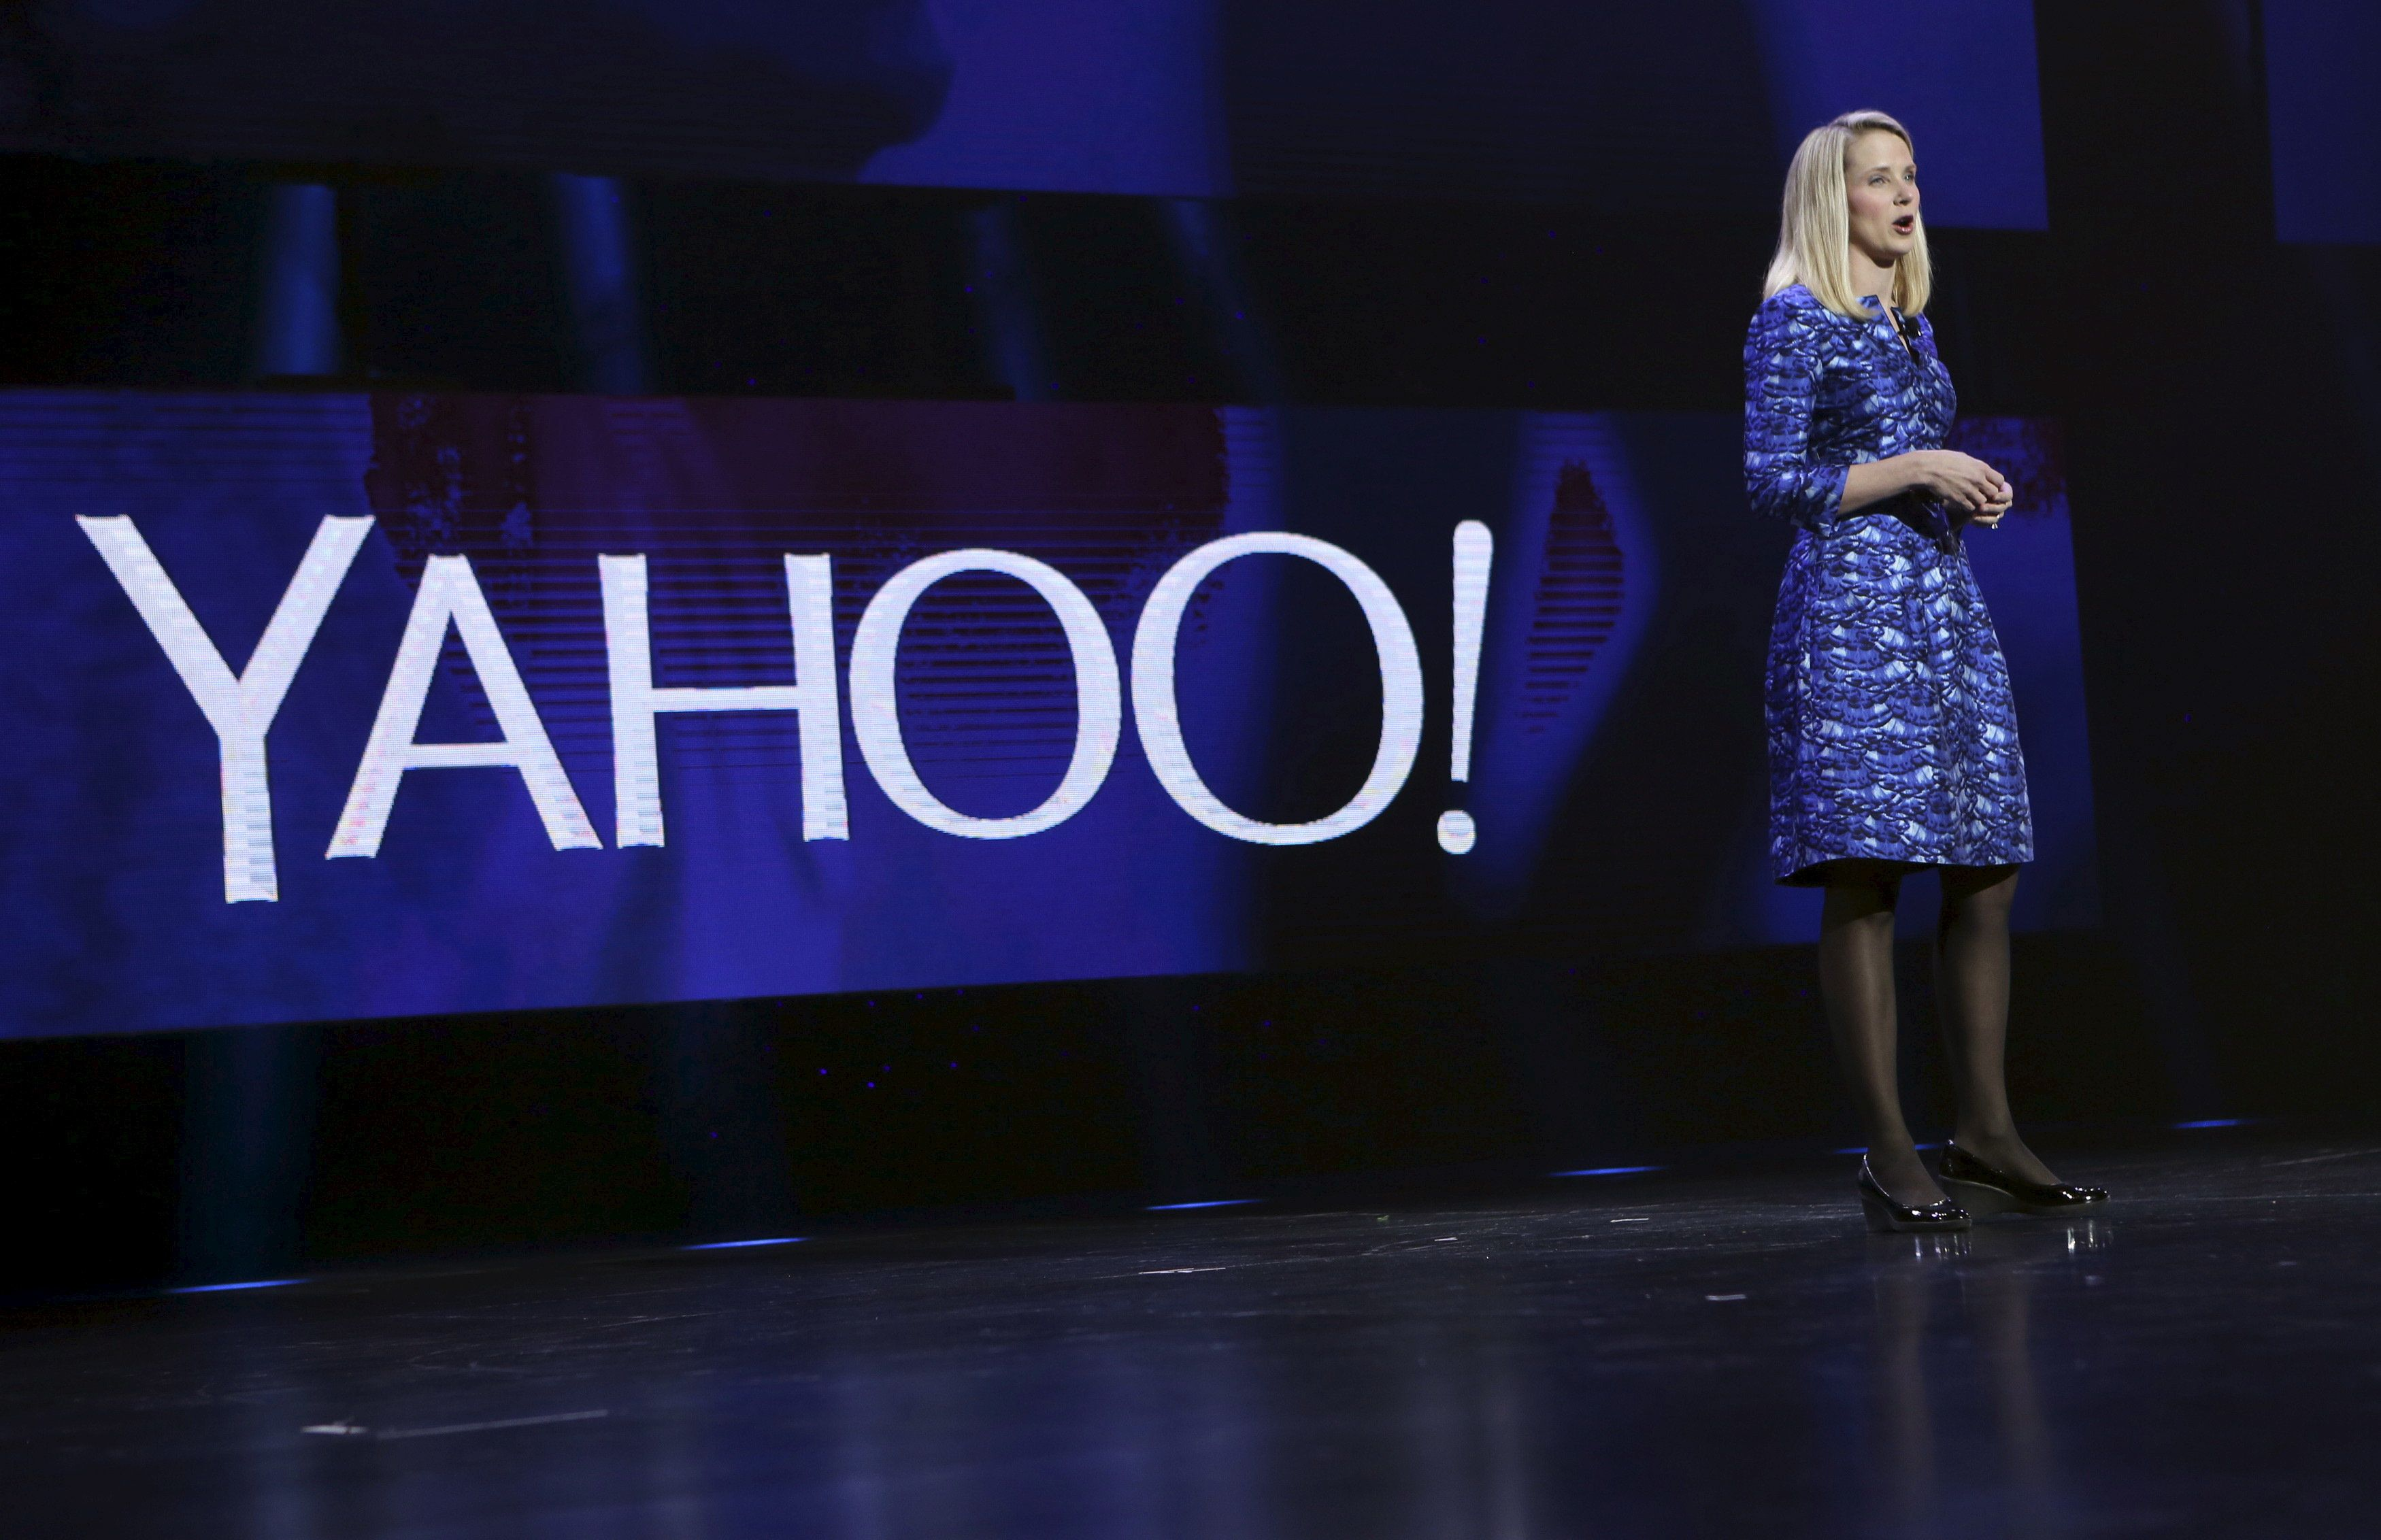 Yahoo CEO Marissa Mayer delivers her keynote address at the annual Consumer Electronics Show (CES) in Las Vegas, Nevada in this January 7, 2014, file photo. REUTERS/Robert Galbraith/Files  GLOBAL BUSINESS WEEK AHEAD PACKAGE - SEARCH 'BUSINESS WEEK AHEAD APRIL 18'  FOR ALL IMAGES